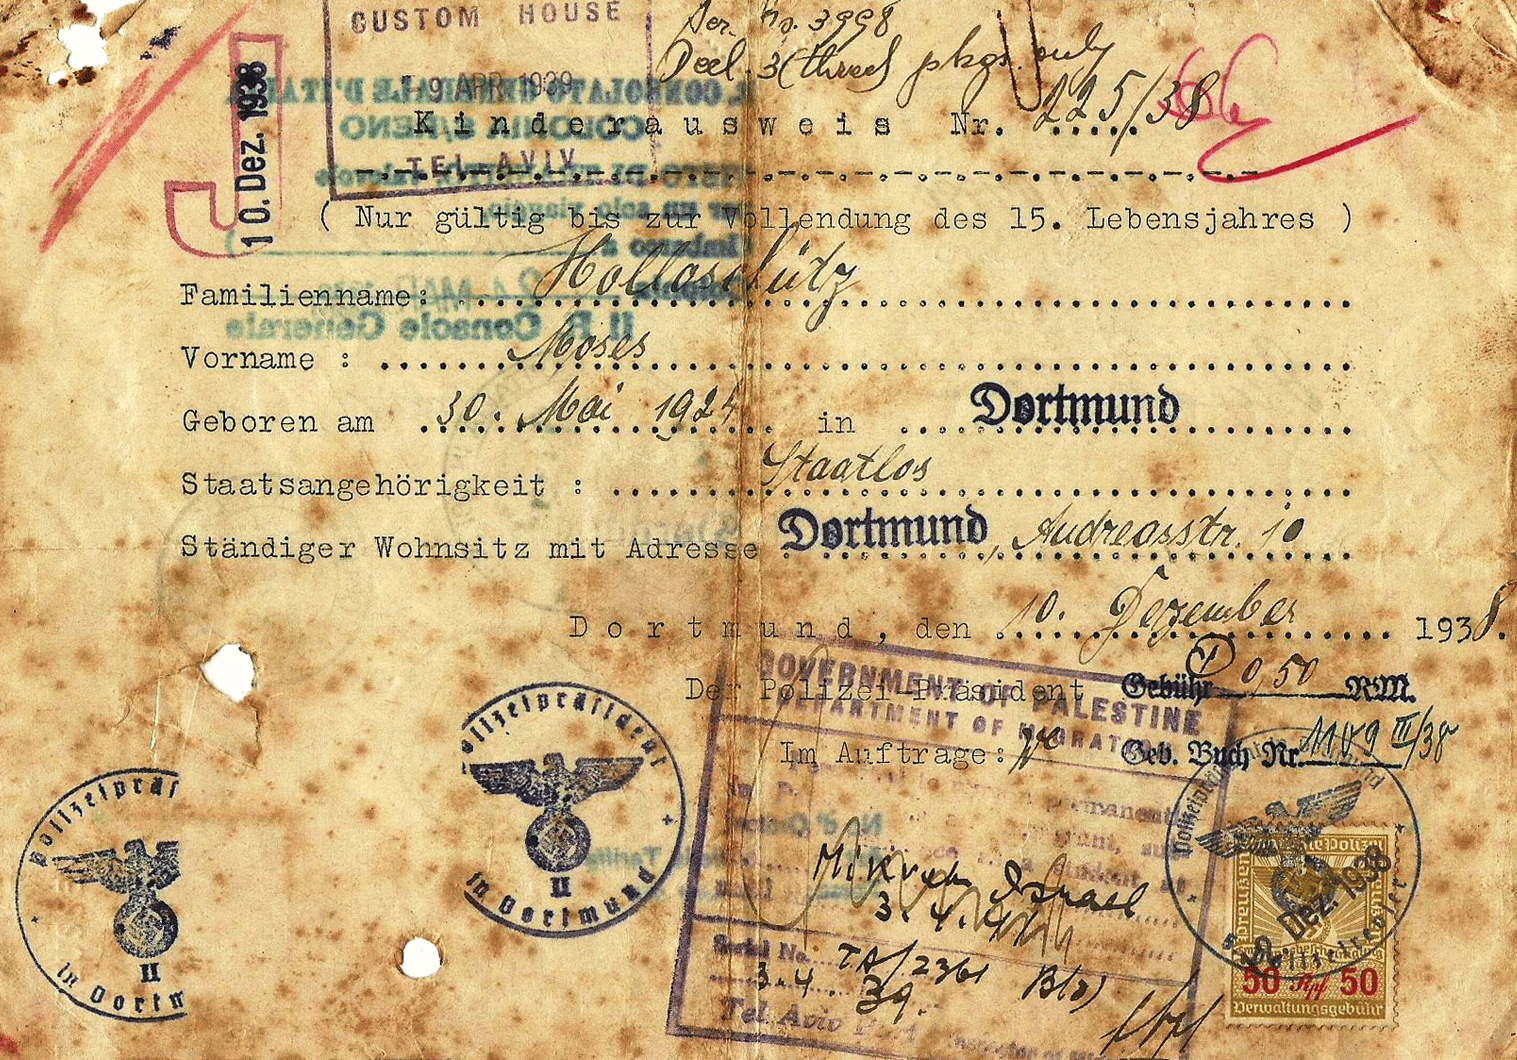 J stamped Jewish travel document for children